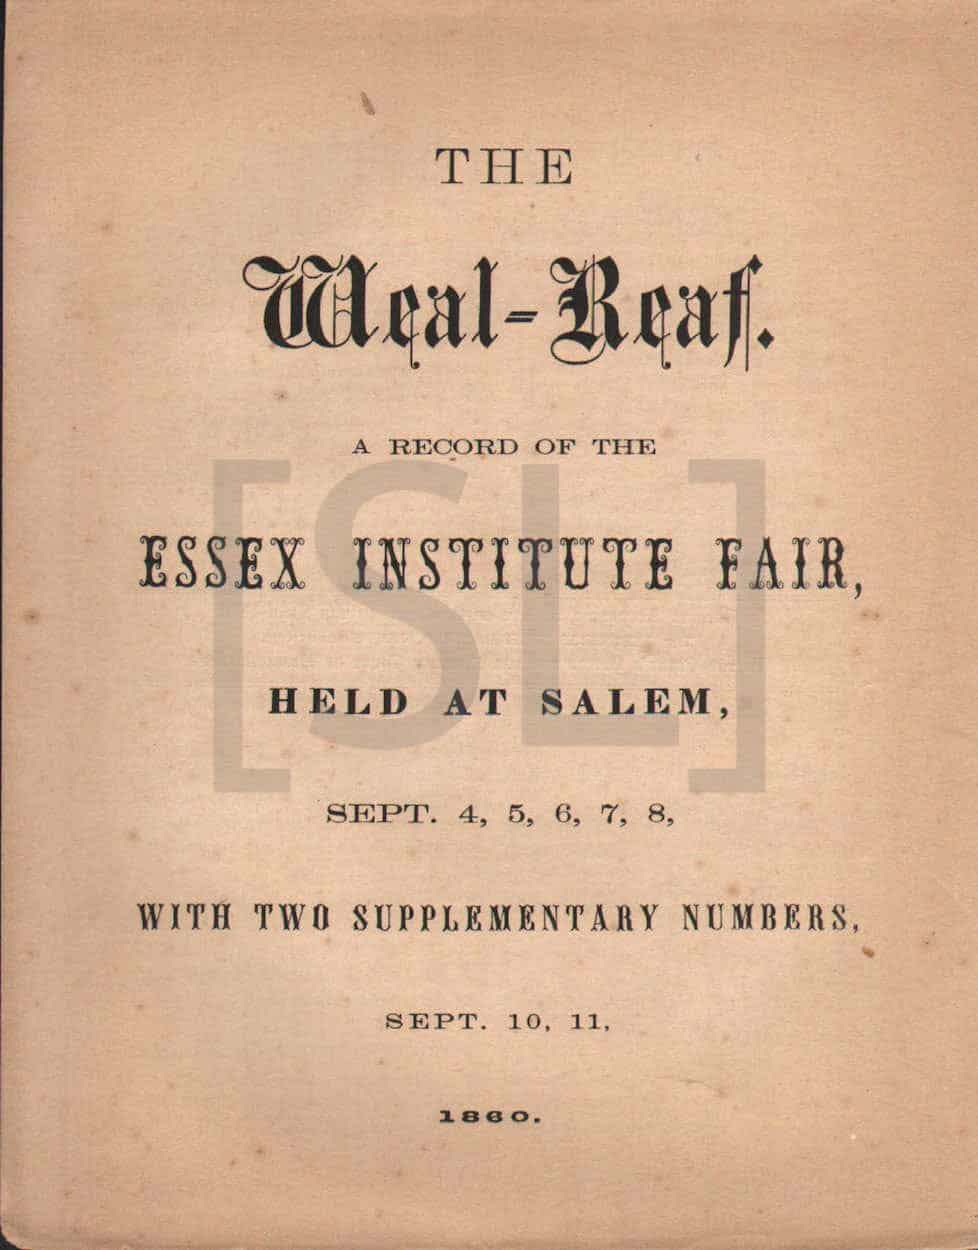 Weal-Reaf. A Record of the Essex Institute Fair, Held at Salem, Sept. 4,5,6,7,8, With Two Supplementary Numbers, Sept. 10,11, 1860